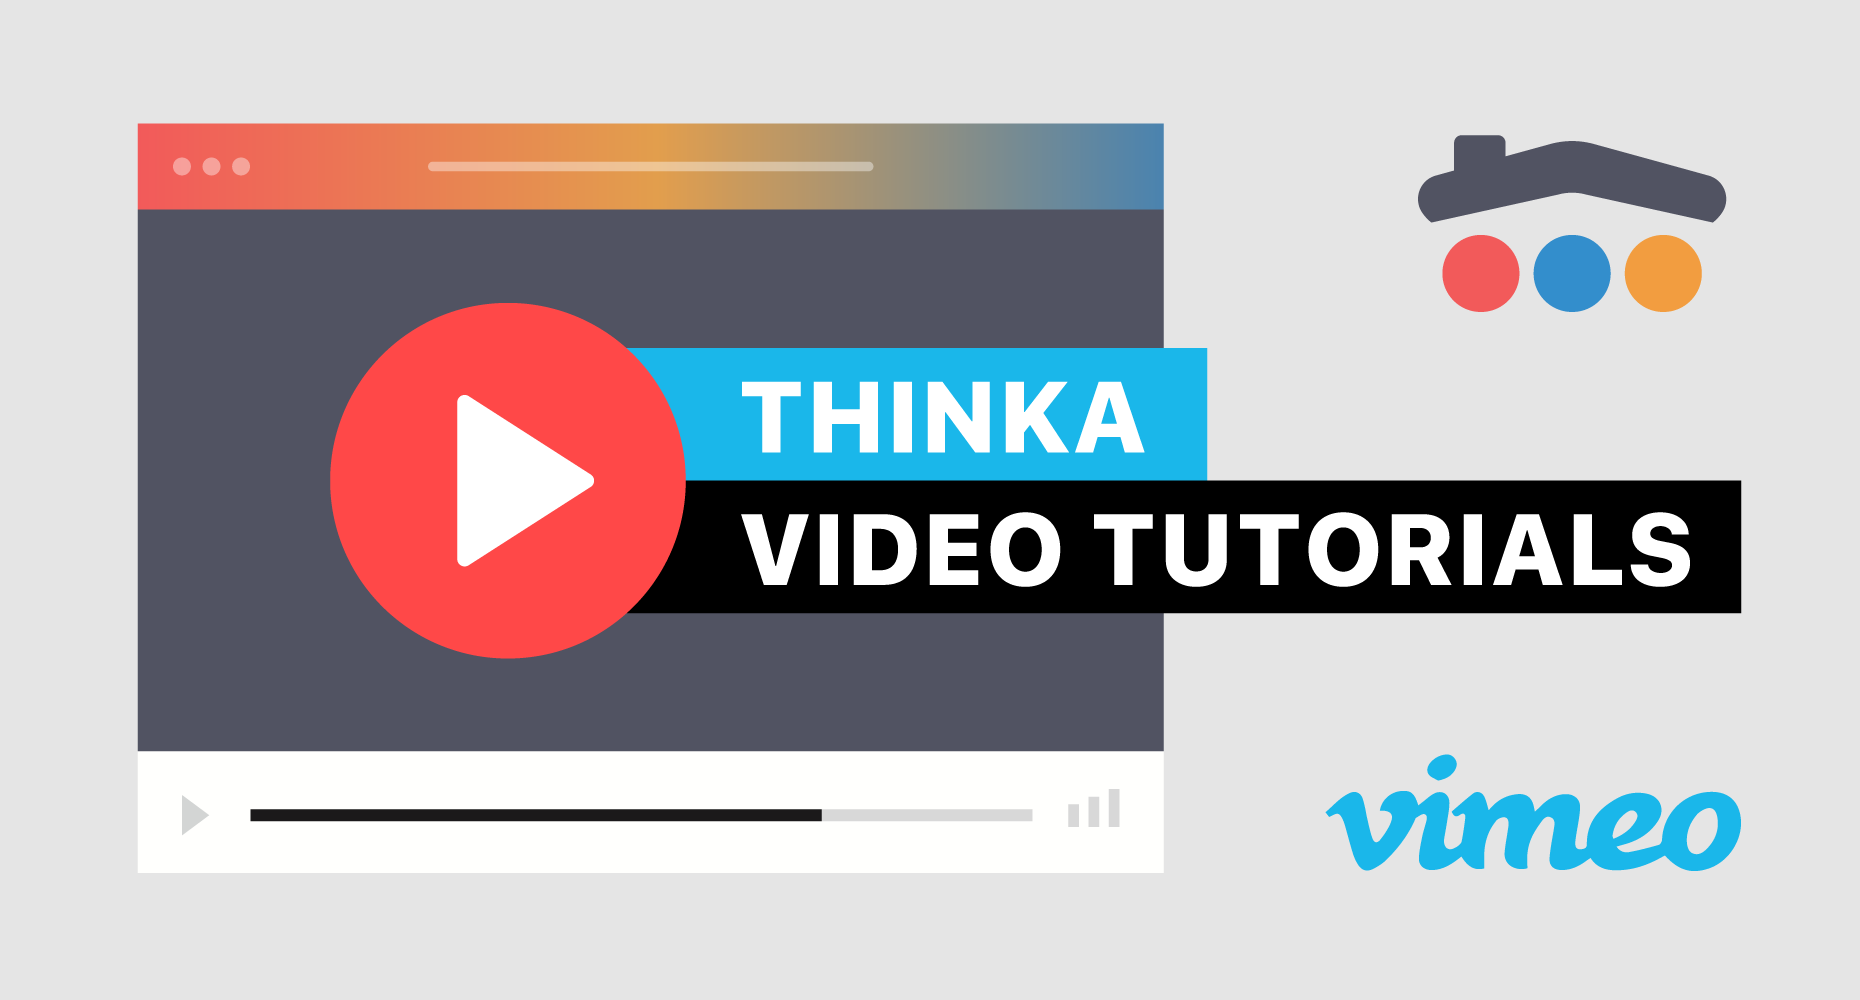 Thinka tutorial banner